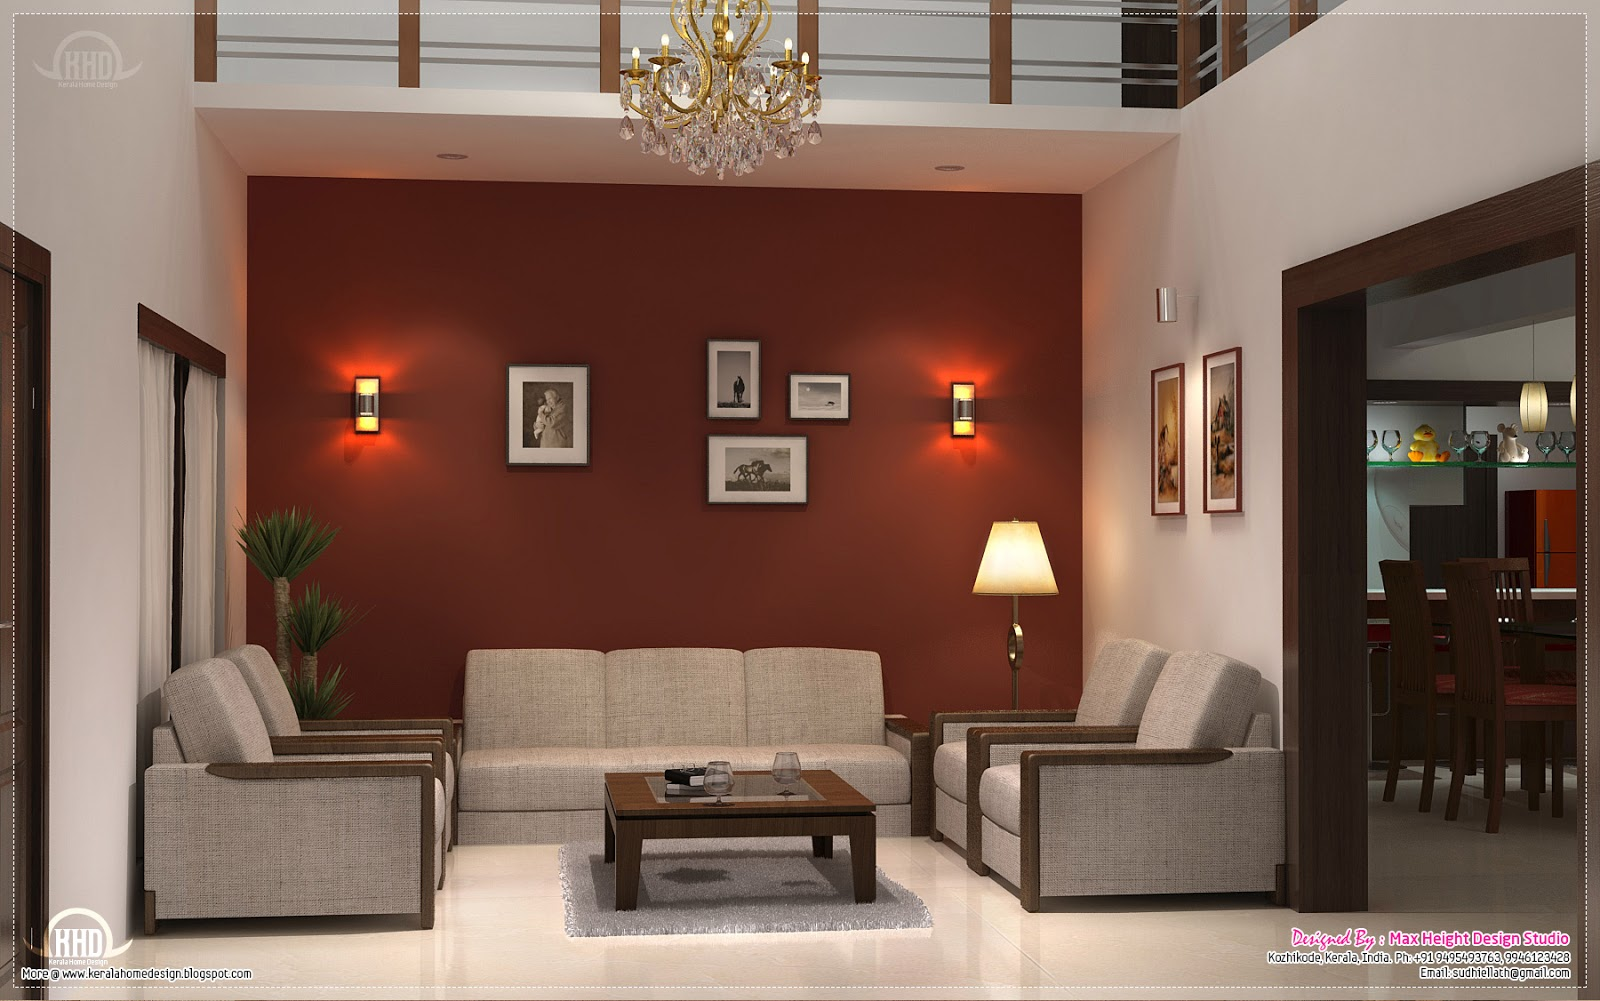 Home interior design ideas home kerala plans for New room interior design